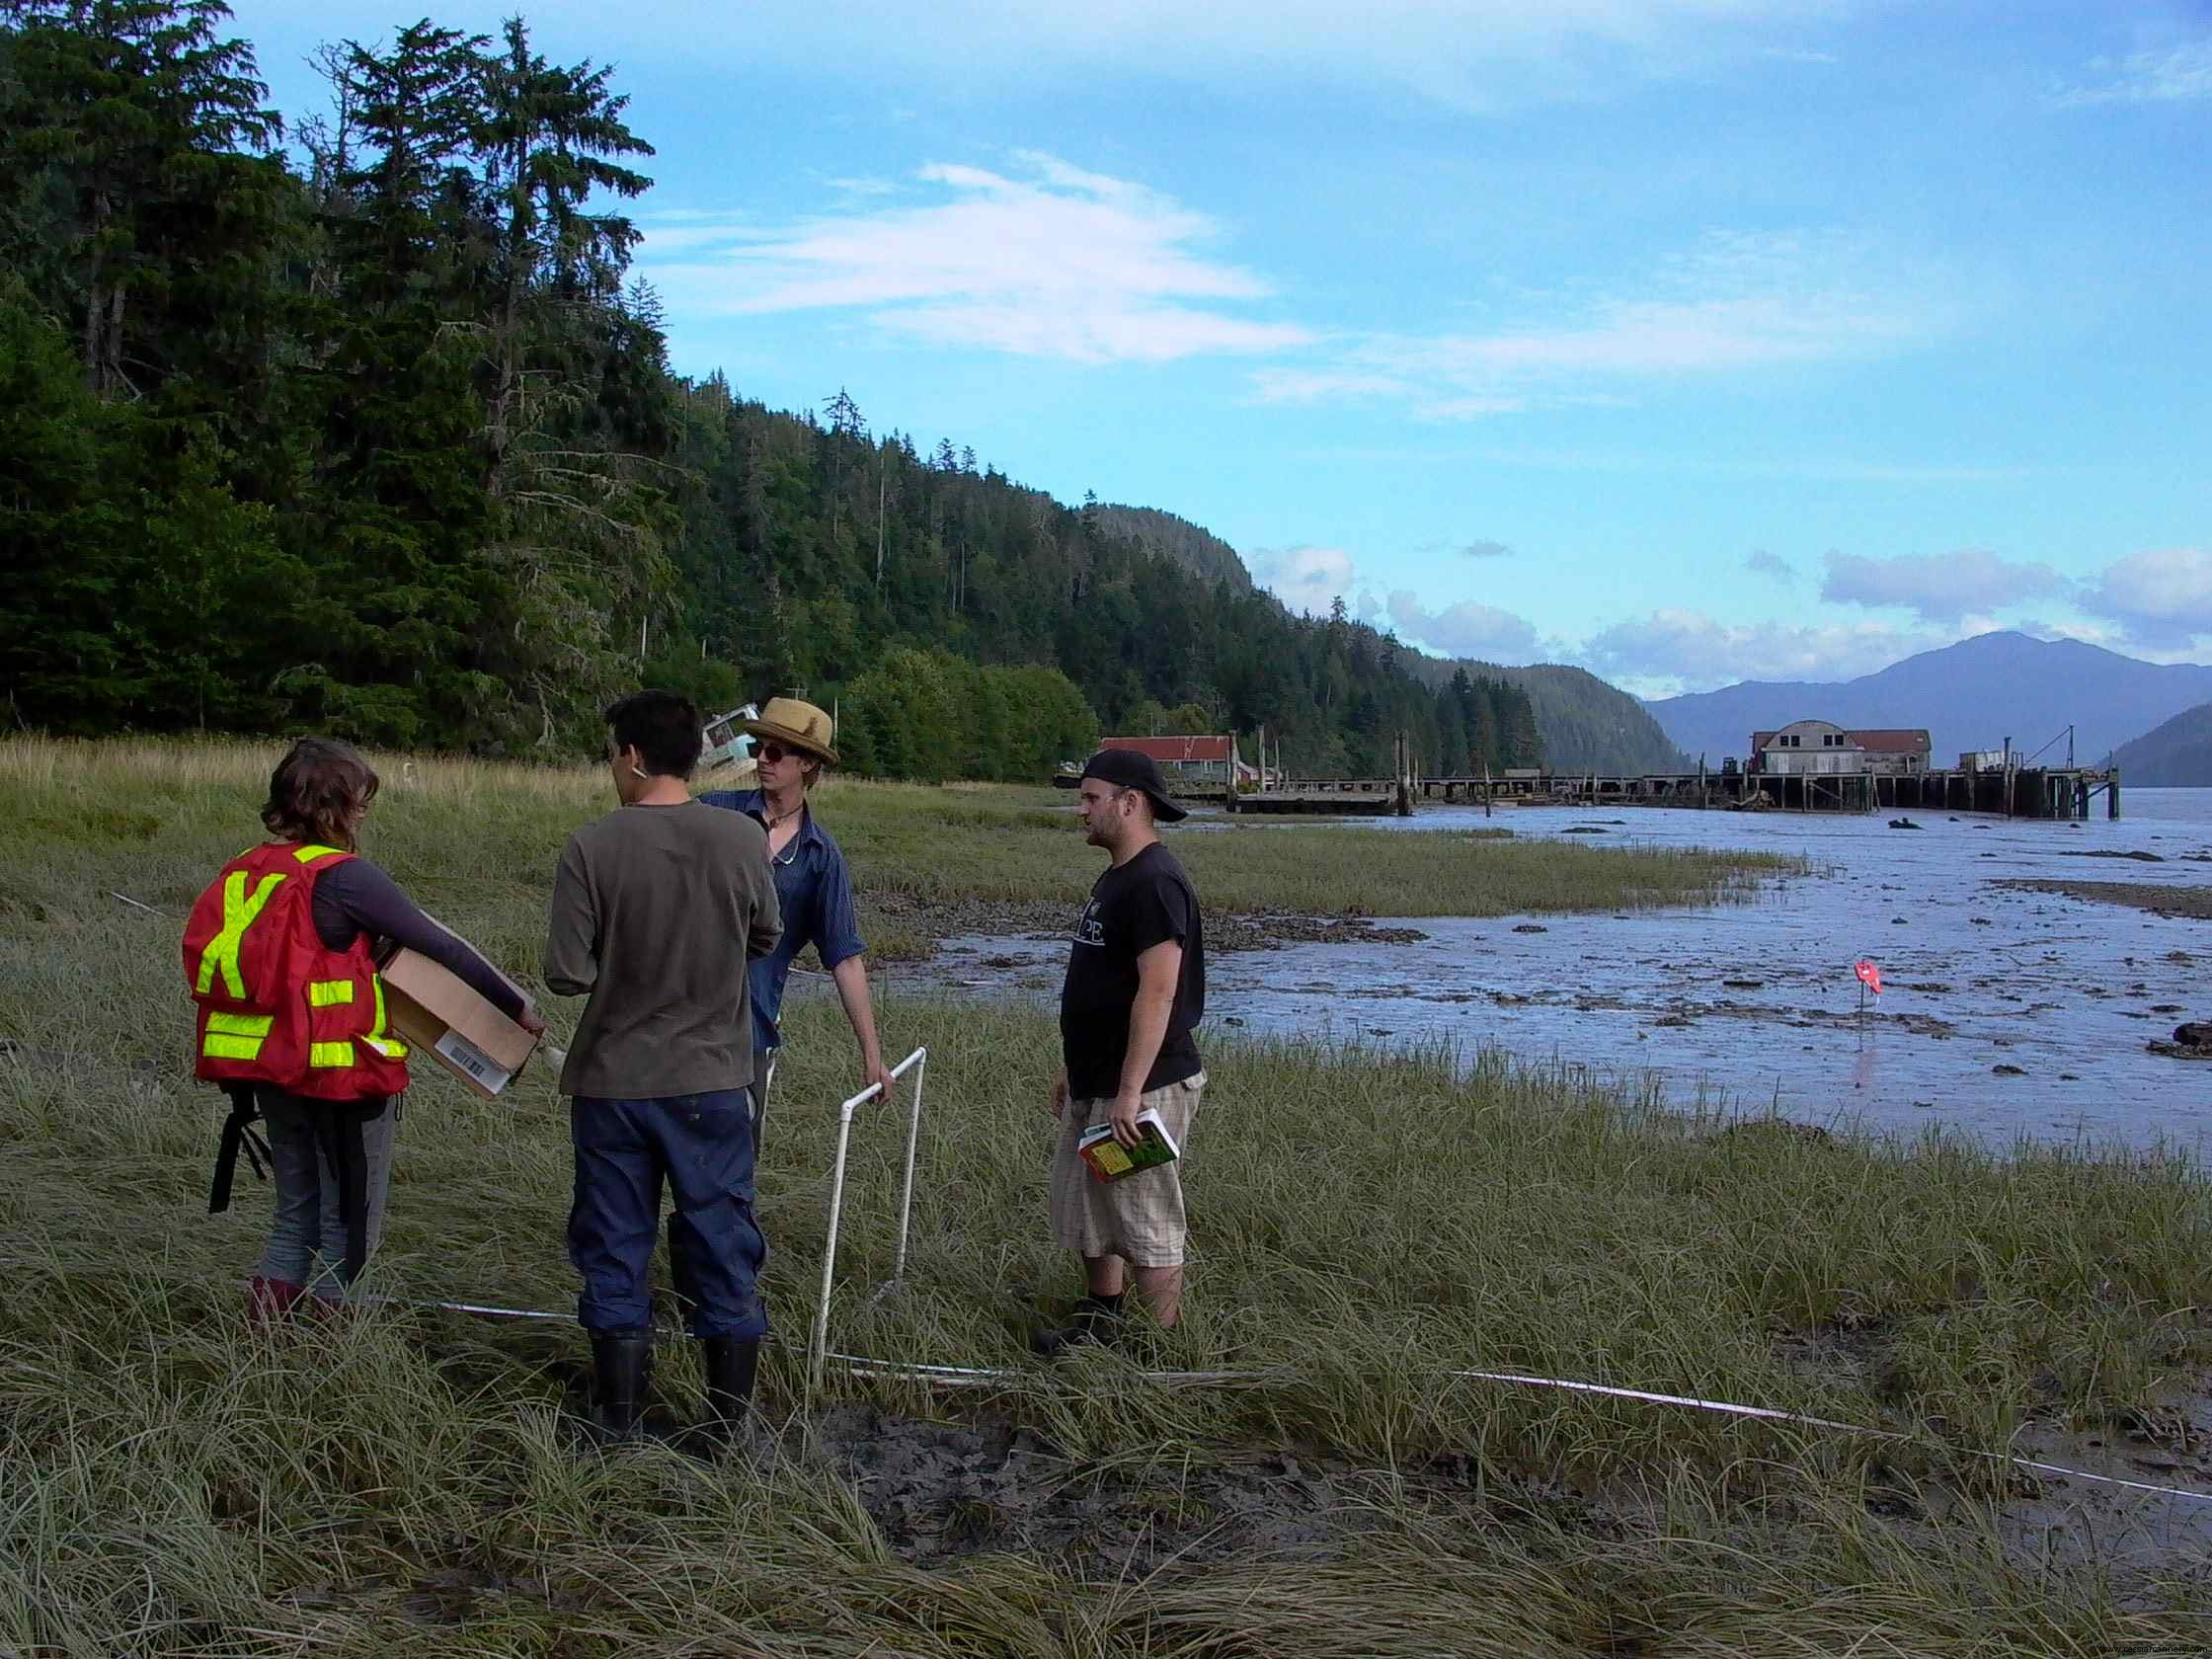 Cassiar Cannery - the students broke into groups of three or four